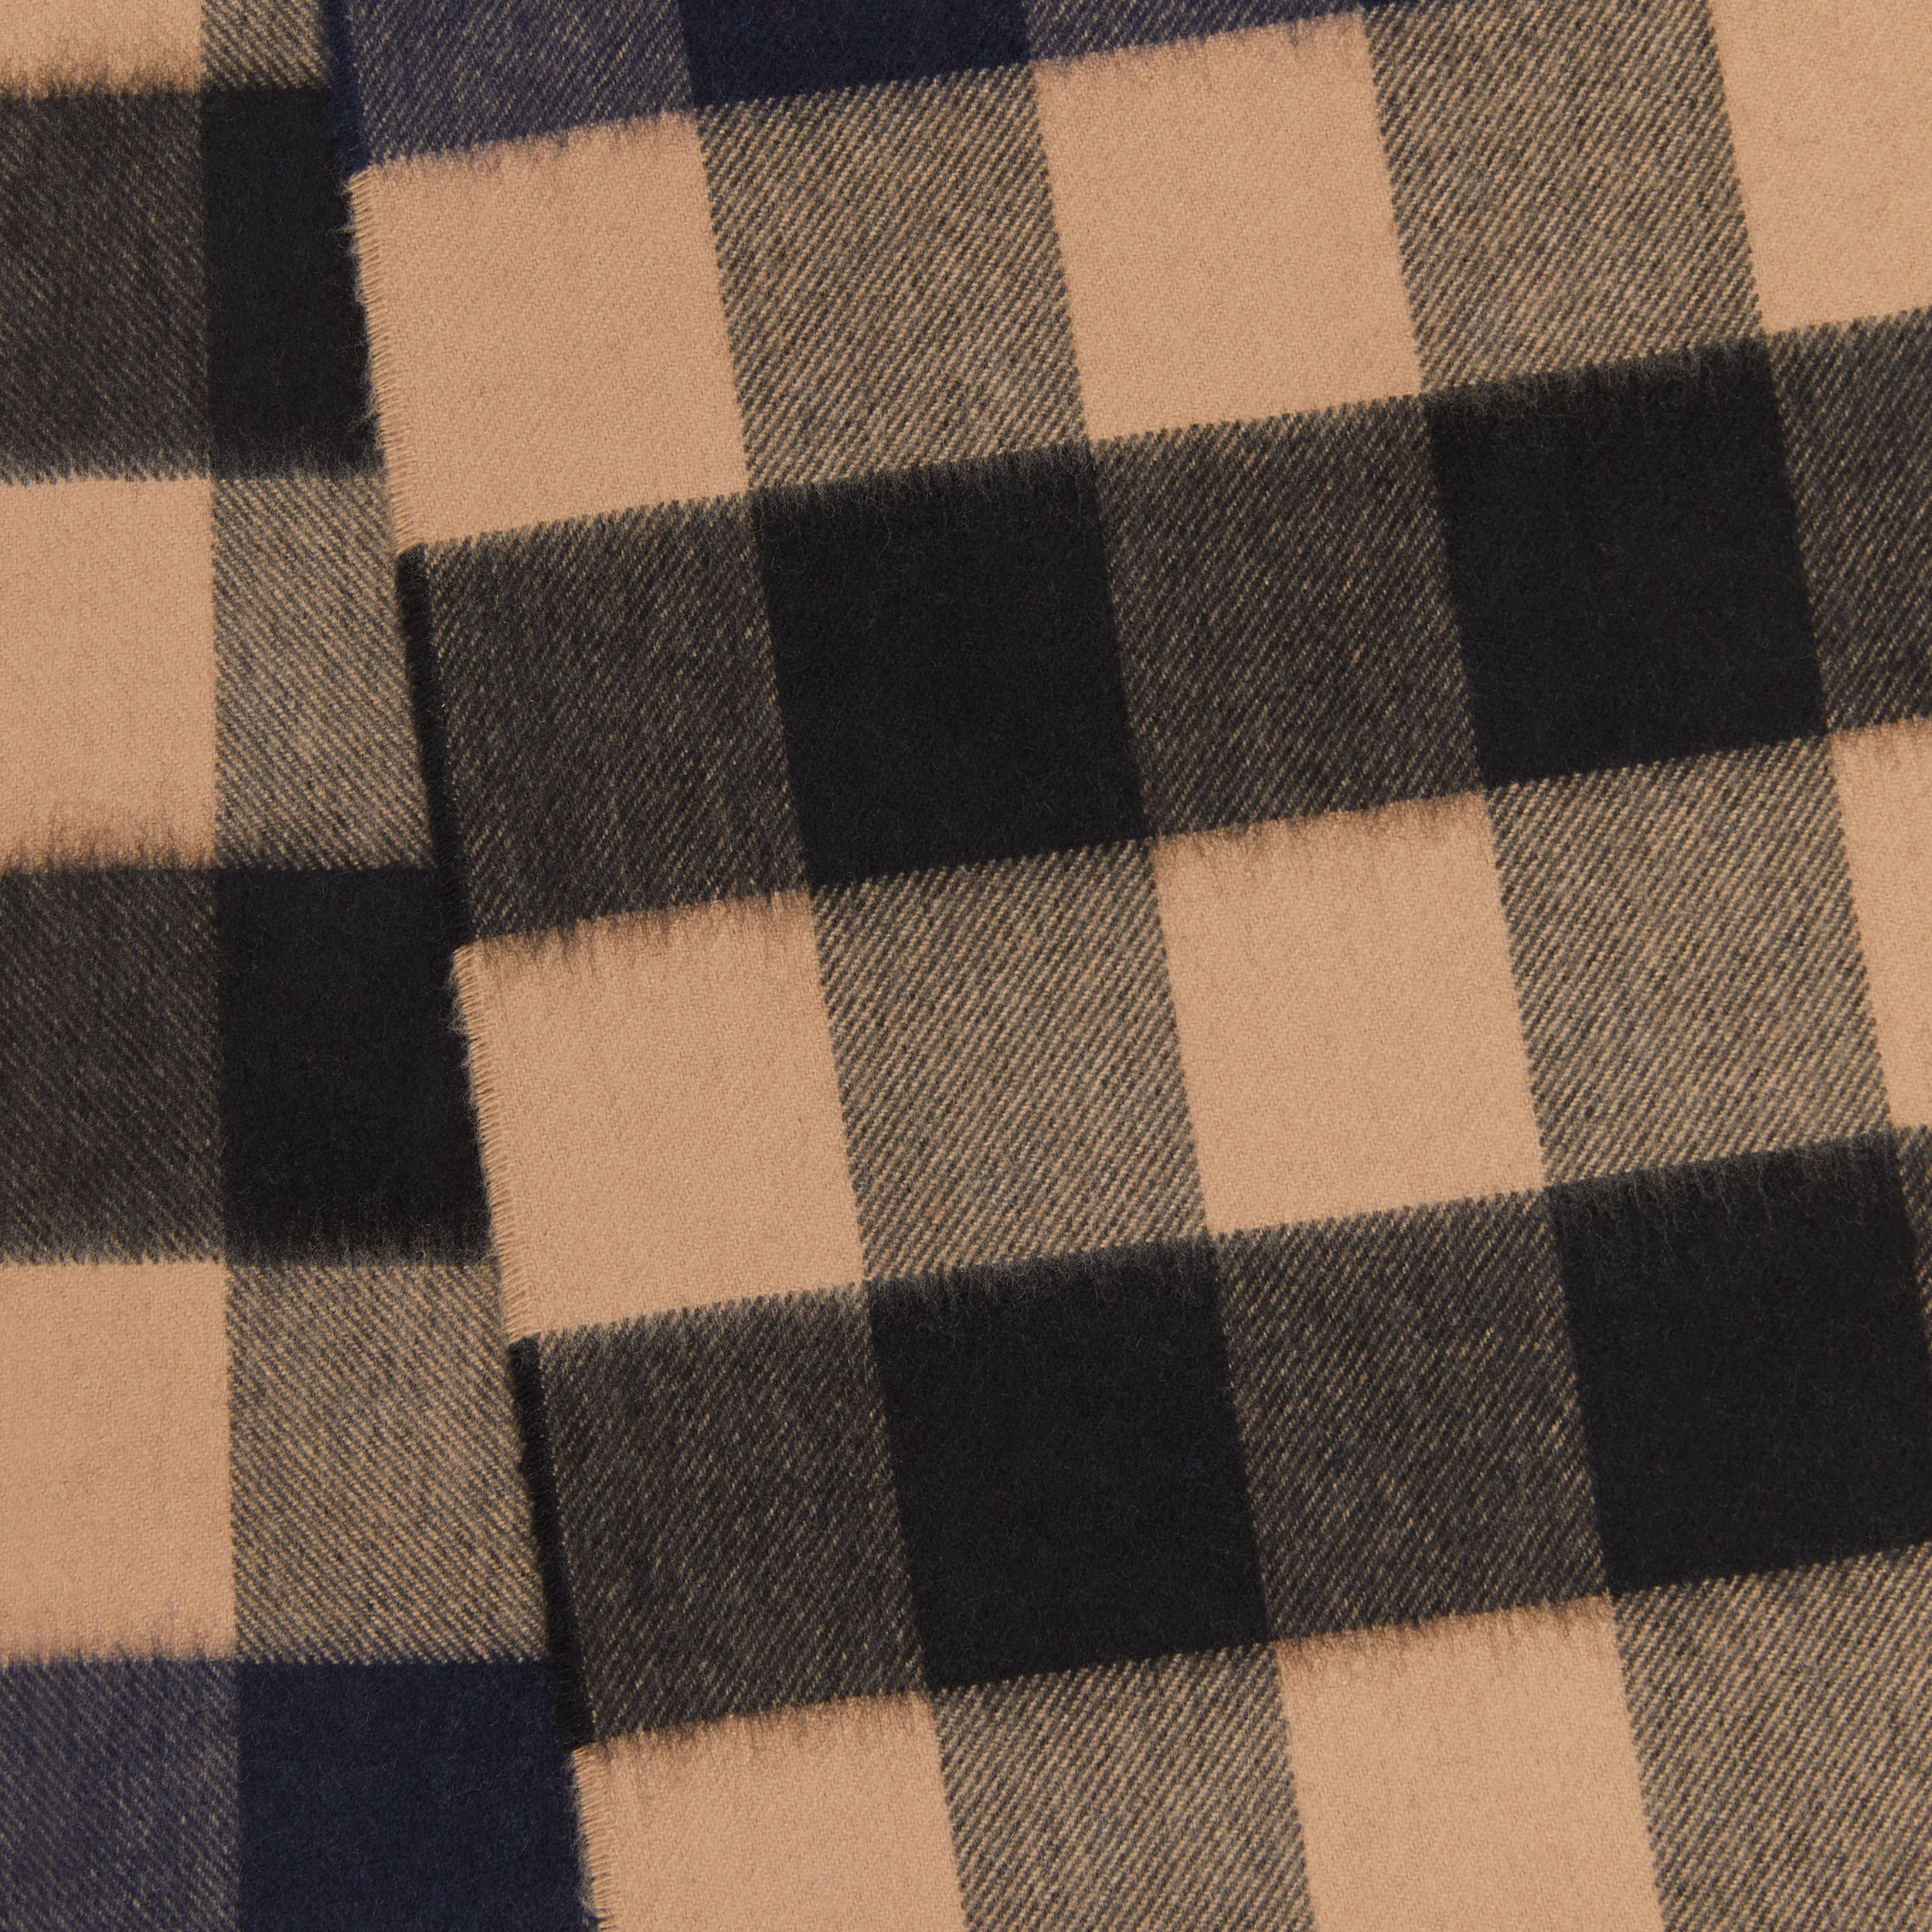 Check Cashmere Scarf in Indigo | Burberry - 2